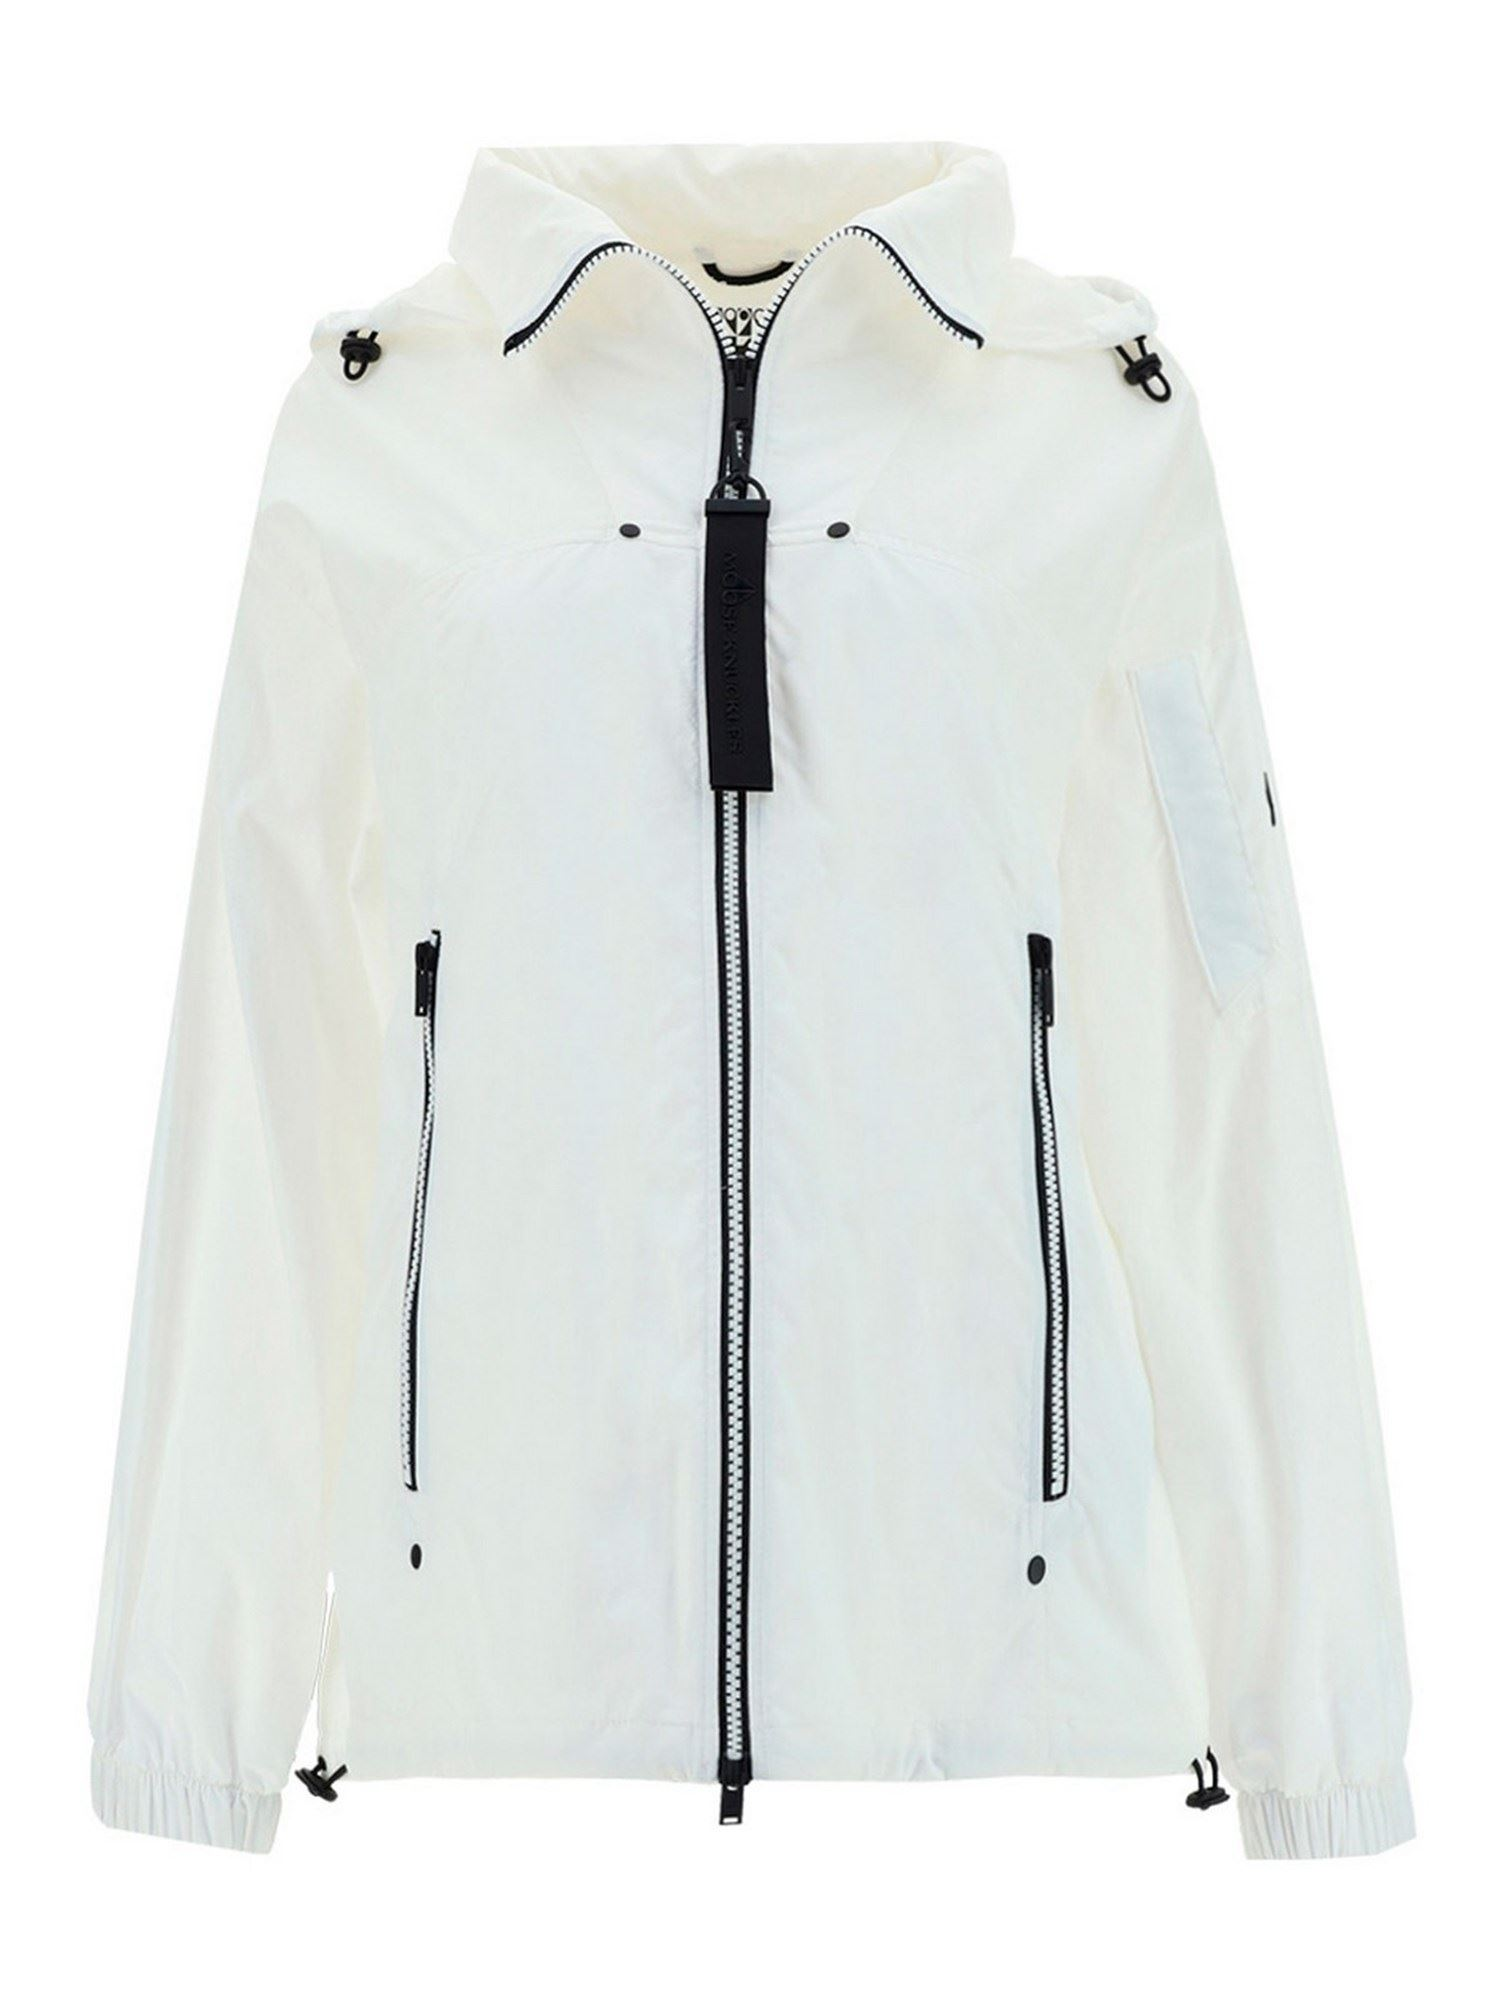 Moose Knuckles Jackets AUDITION JACKET IN WHITE